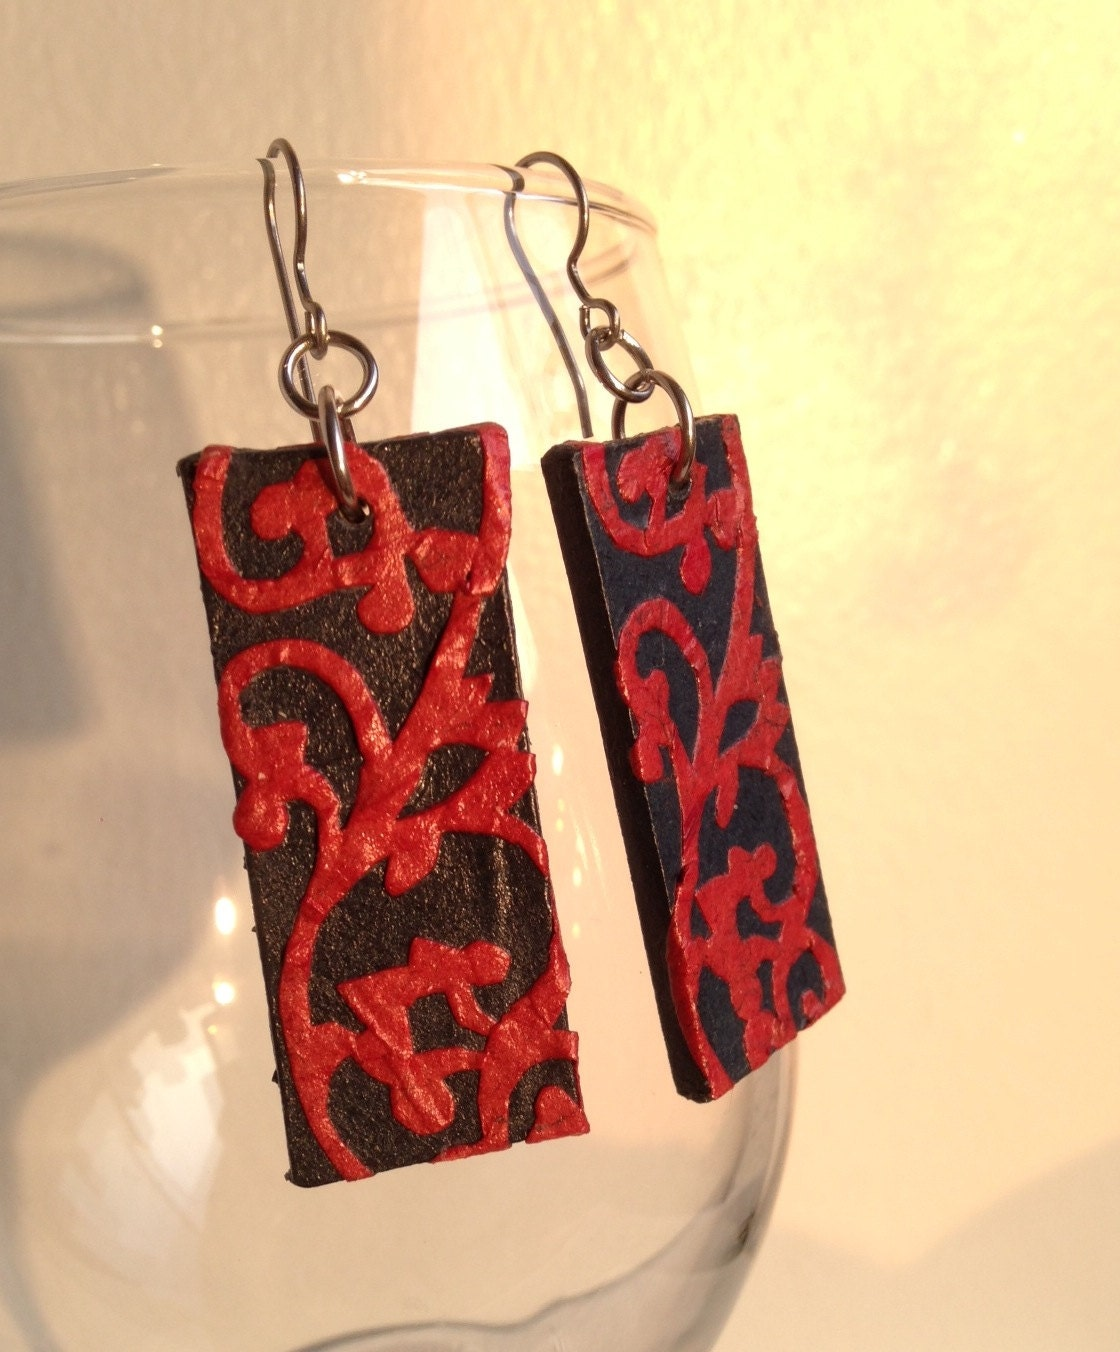 Navy & Red Handmade Hanji Paper Dangle Earrings Swirl Design Hypoallergenic hooks Lightweight Ear rings - HanjiNaty